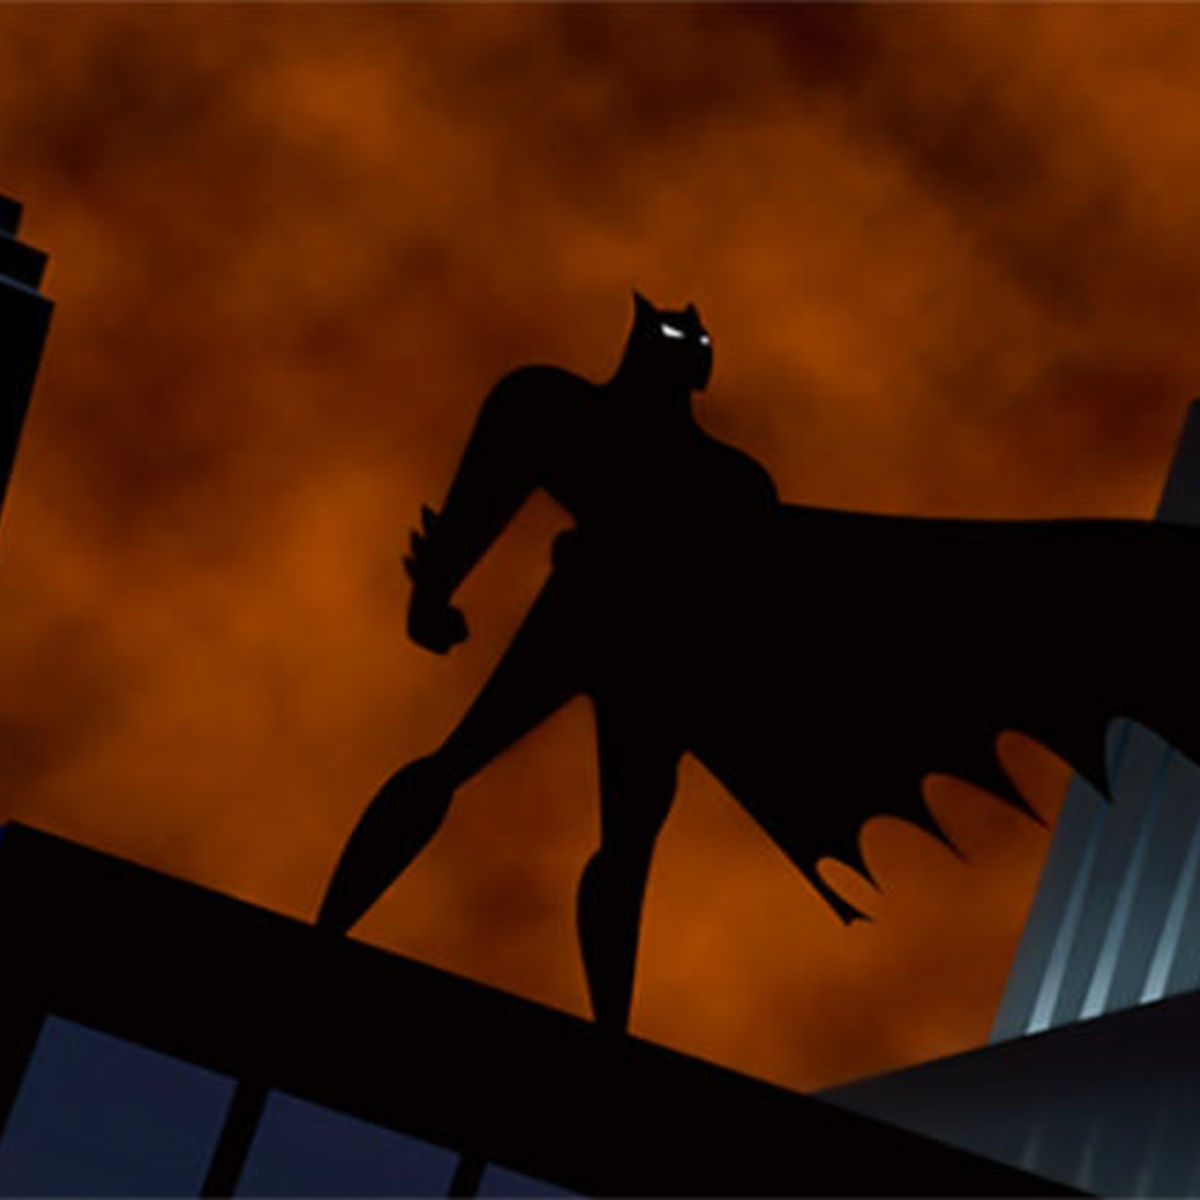 The 15 best episodes of batman the animated series ranked